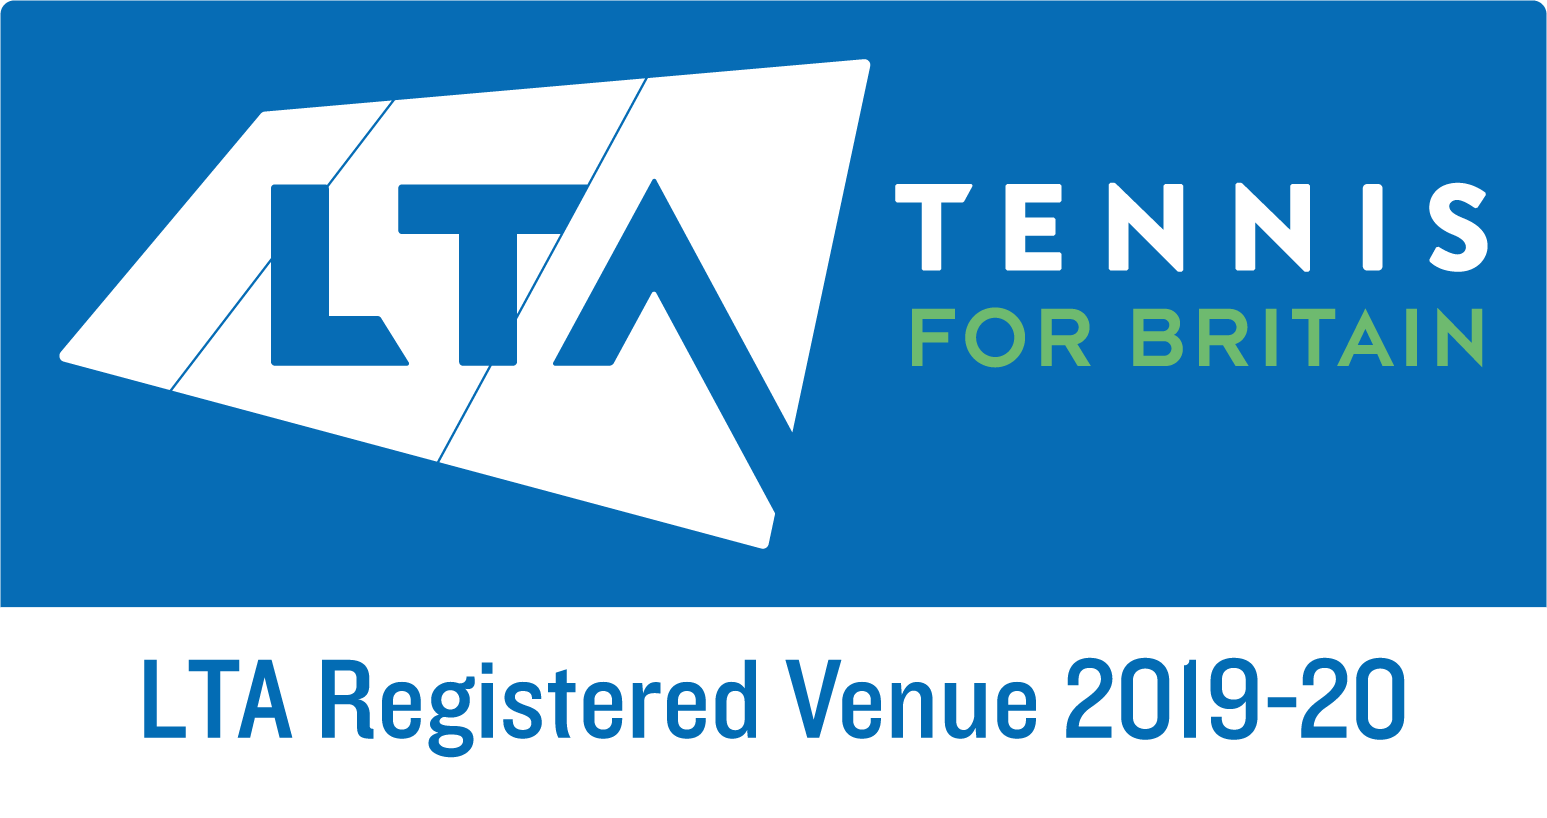 LTA Registered Venue